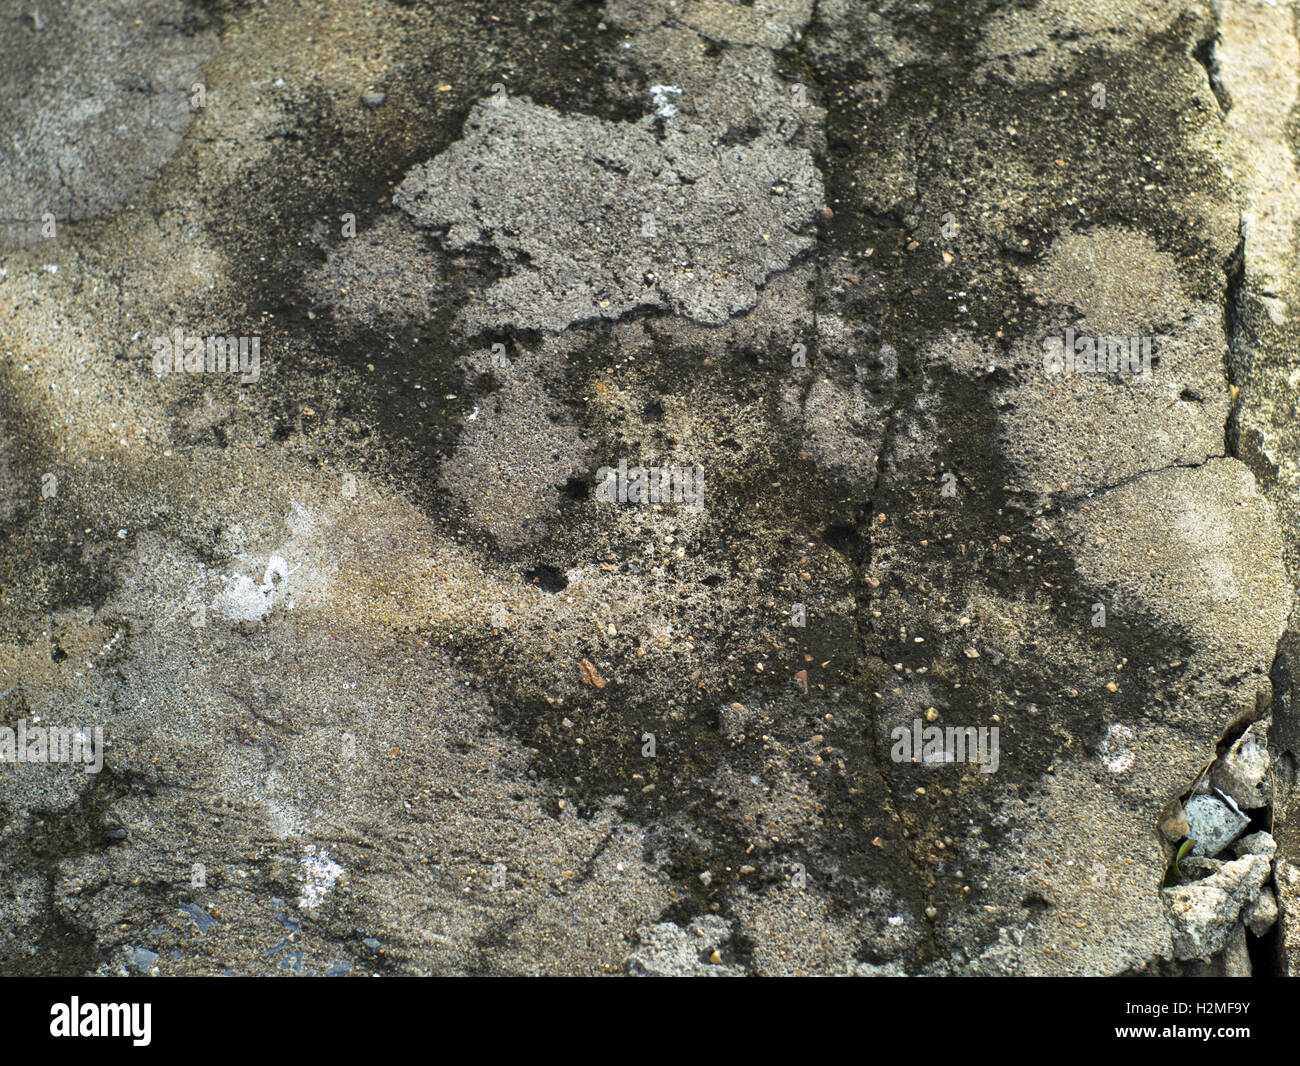 cracked and grainy concrete surface with stains - Stock Image